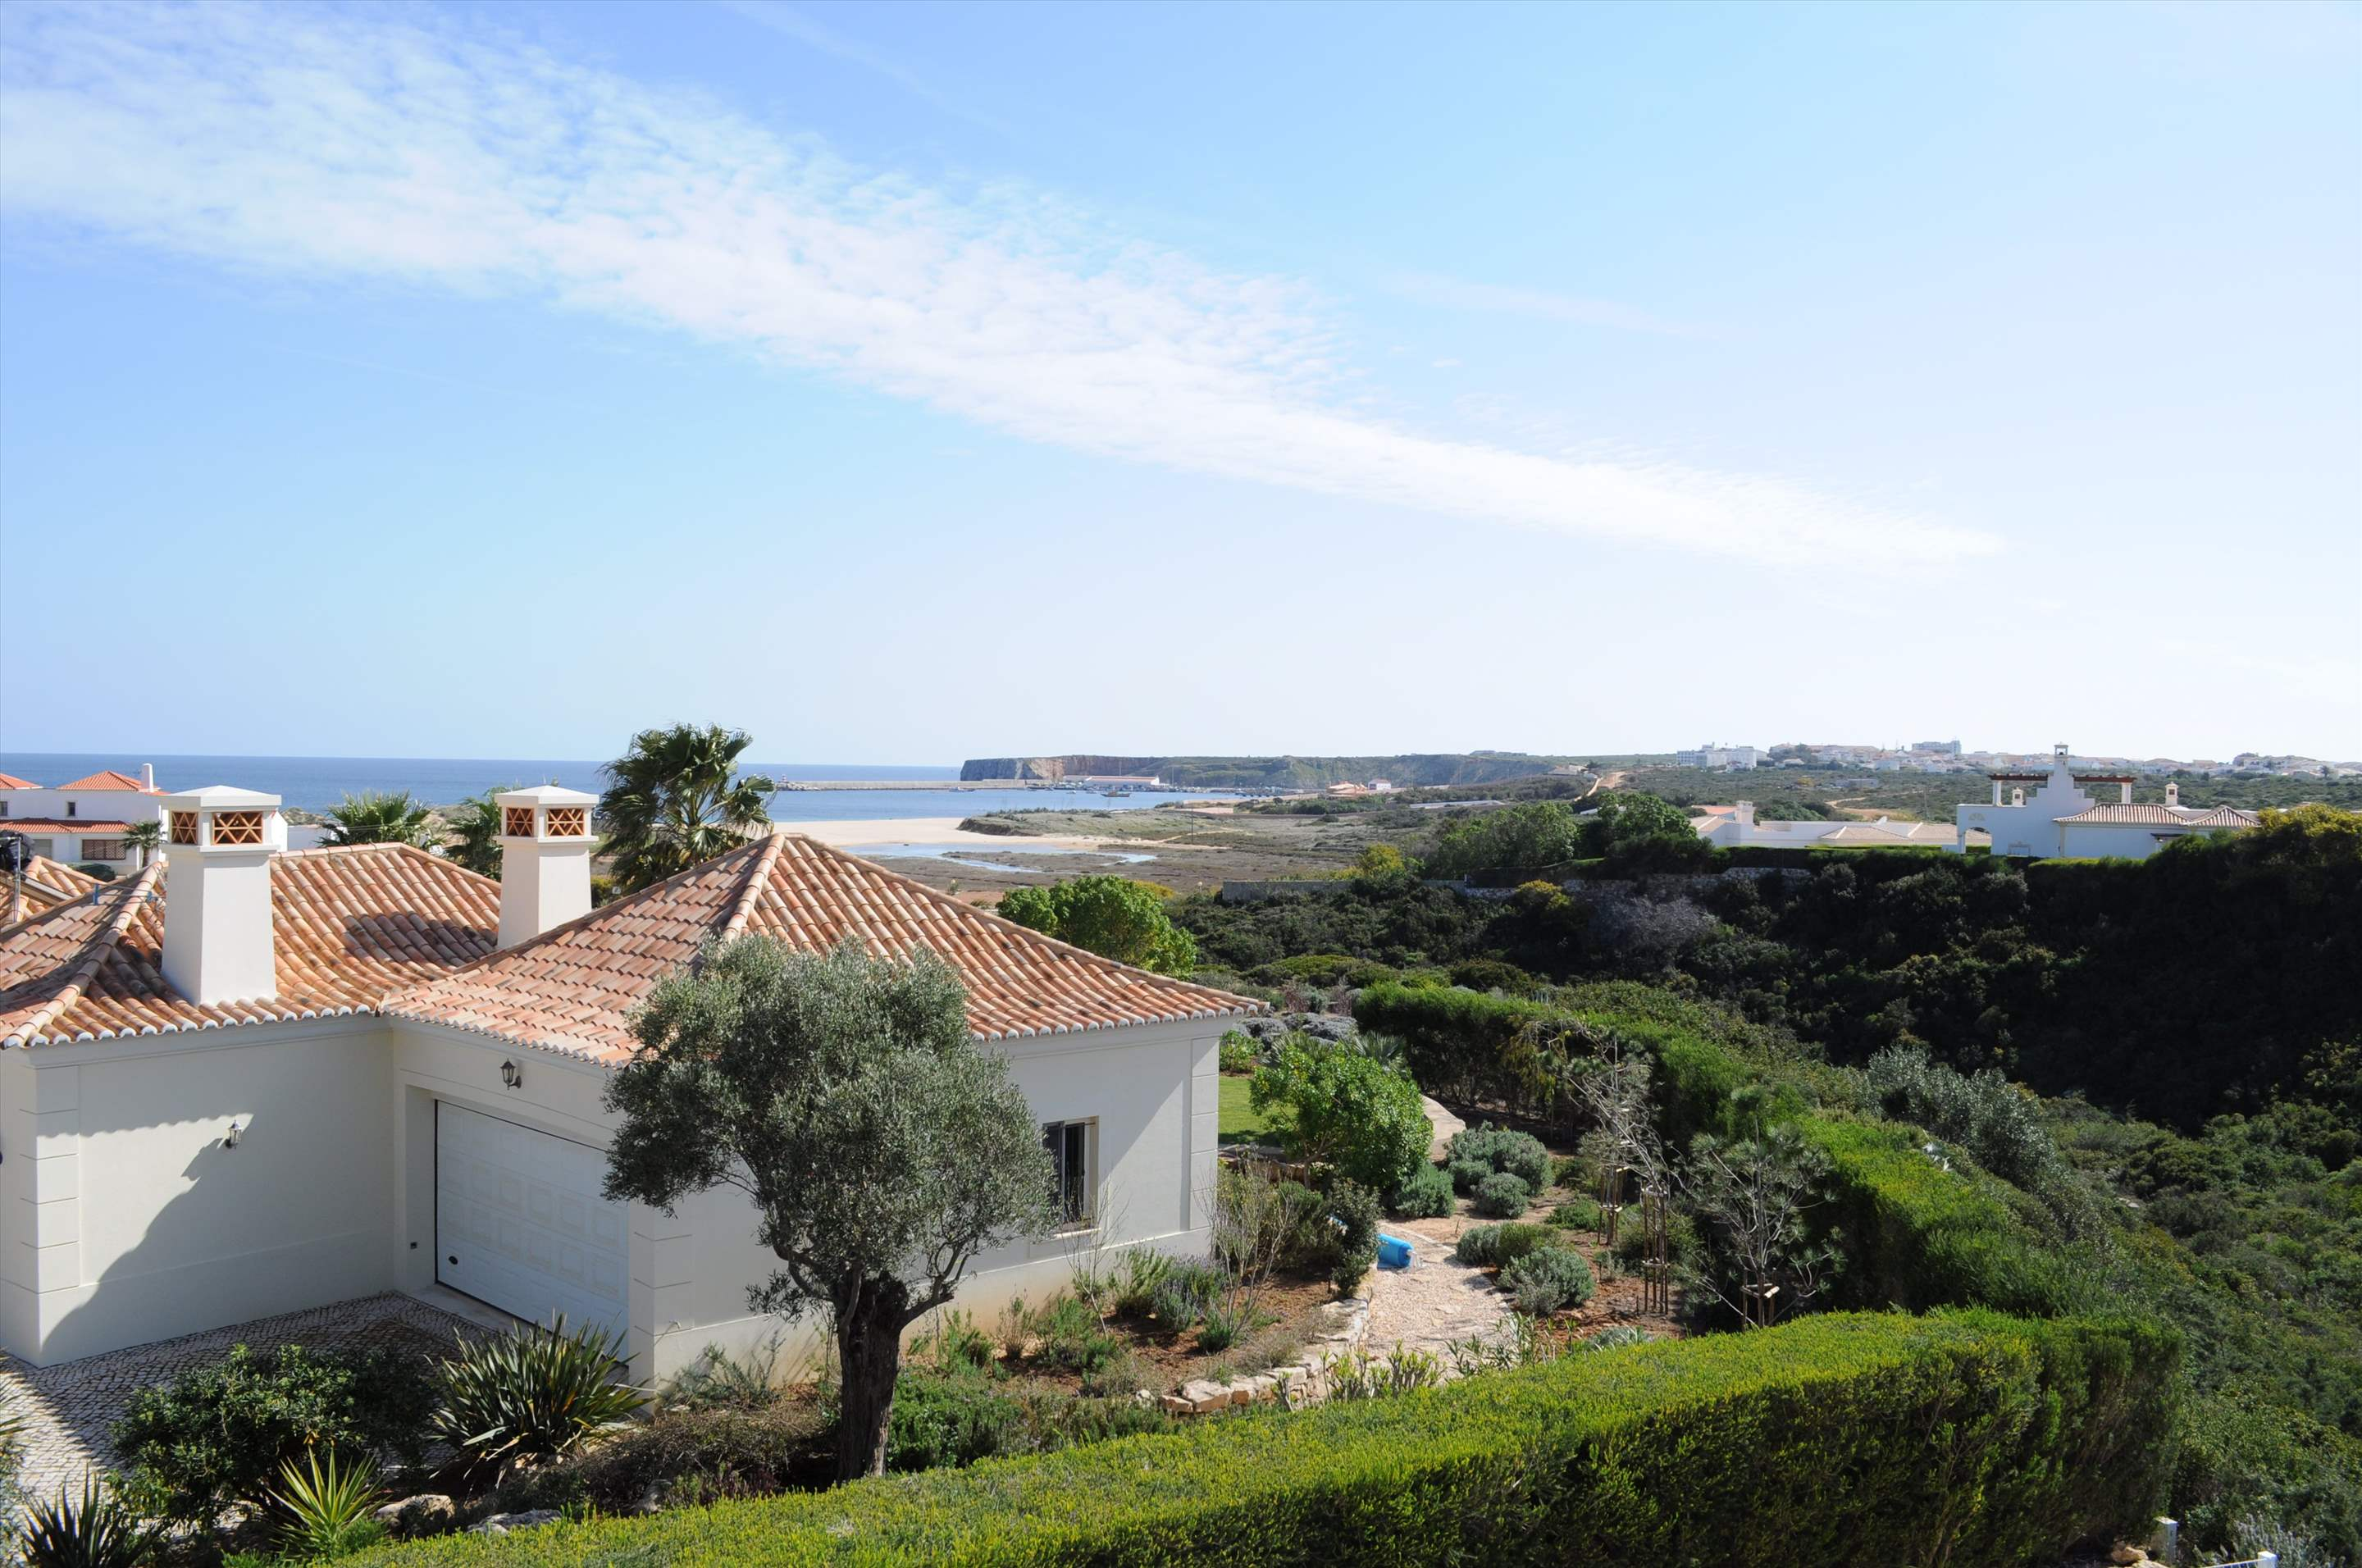 Martinhal Luxury Villa No.6, 3 bedroom villa in Martinhal Sagres, Algarve Photo #13